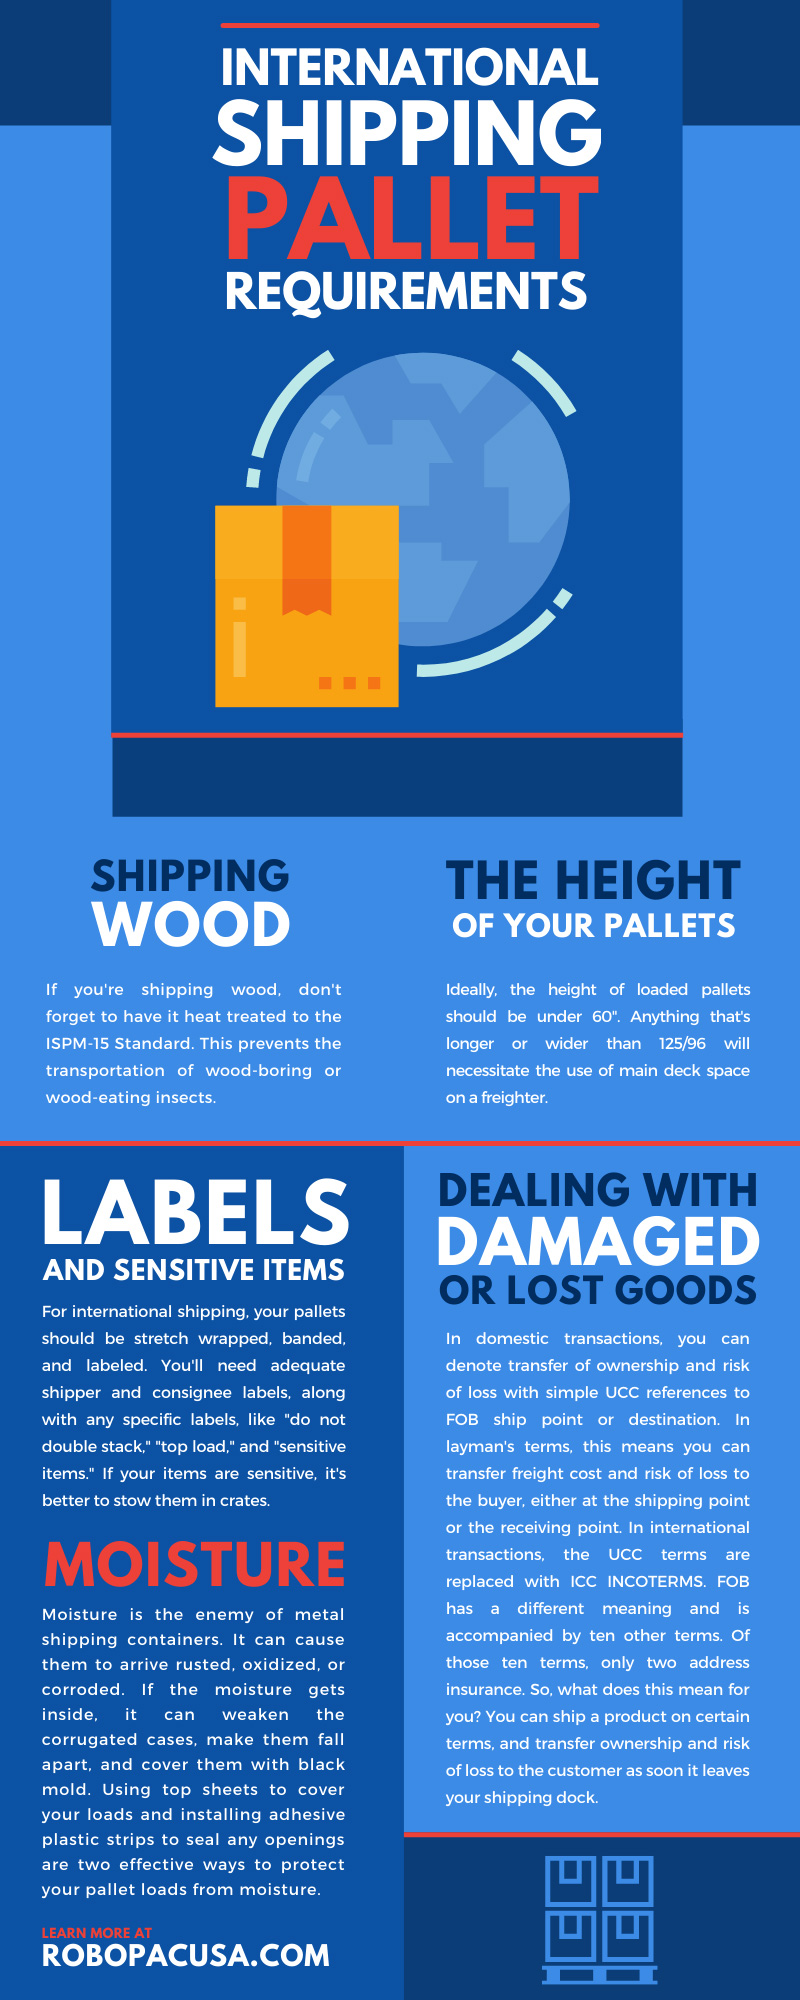 International Shipping Pallet Requirements